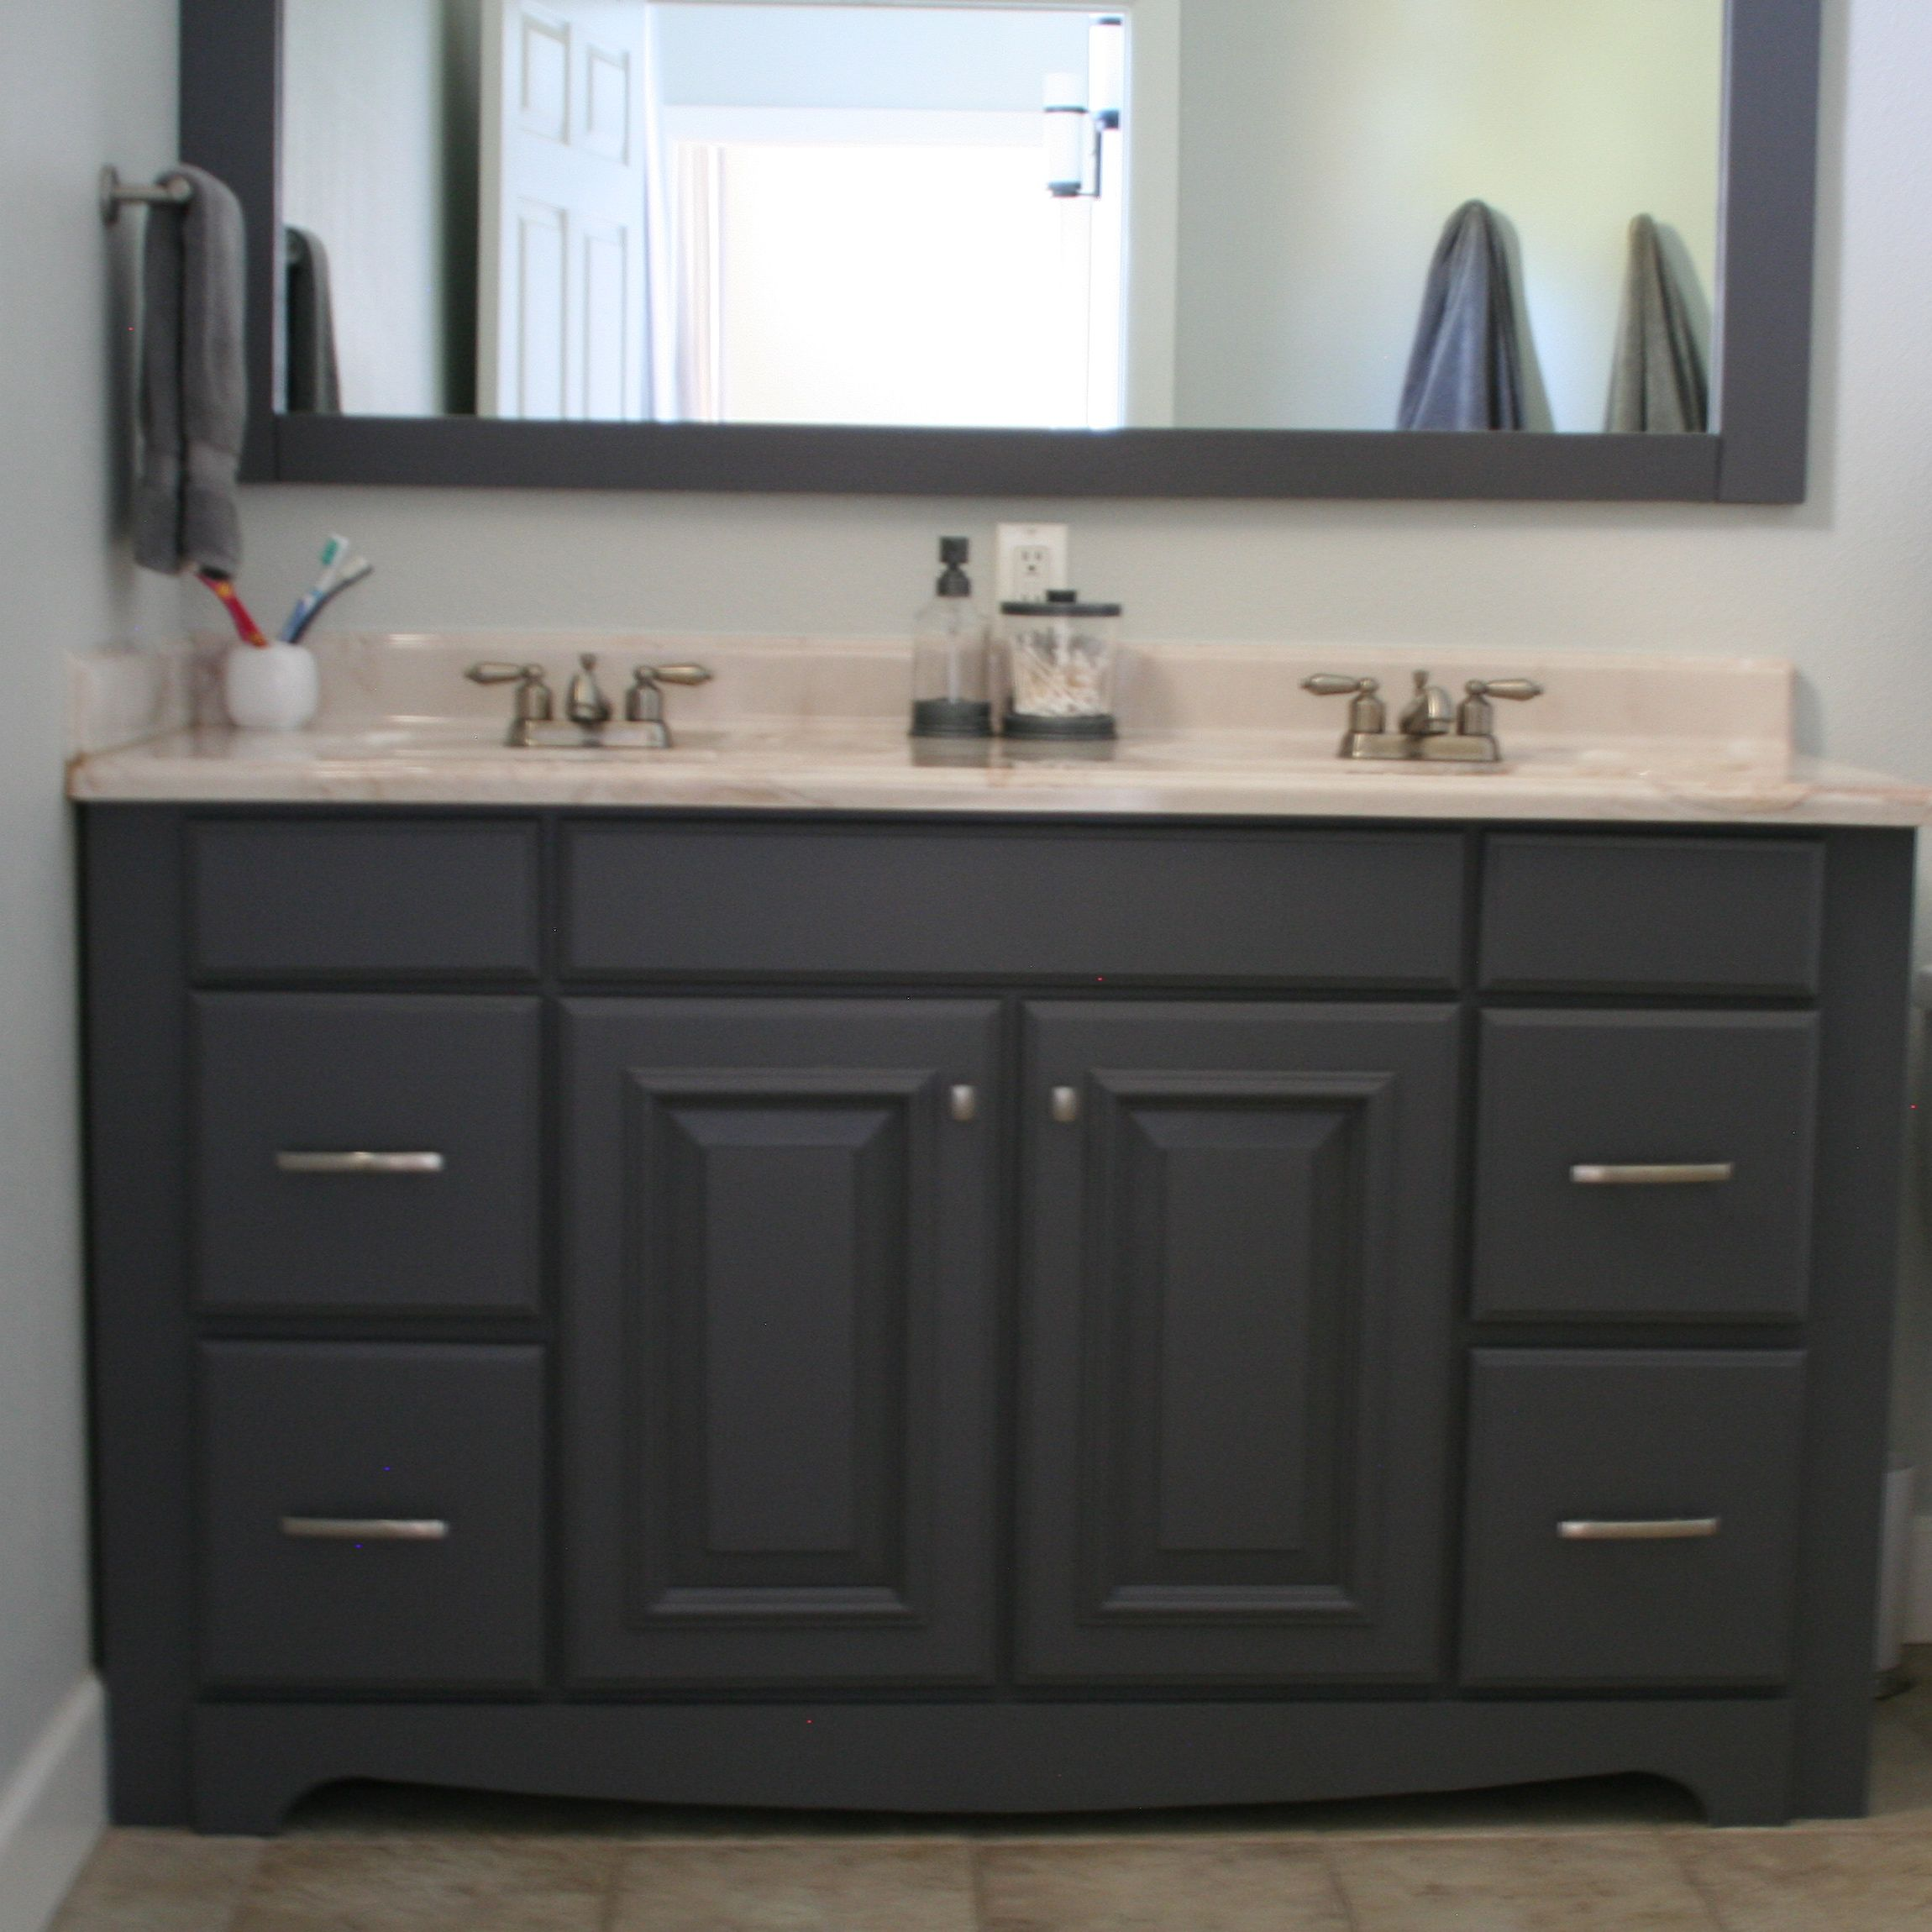 Painting Bathroom Vanity Gray Google Search Brian 39 S Master Bedroom Pinterest Painting